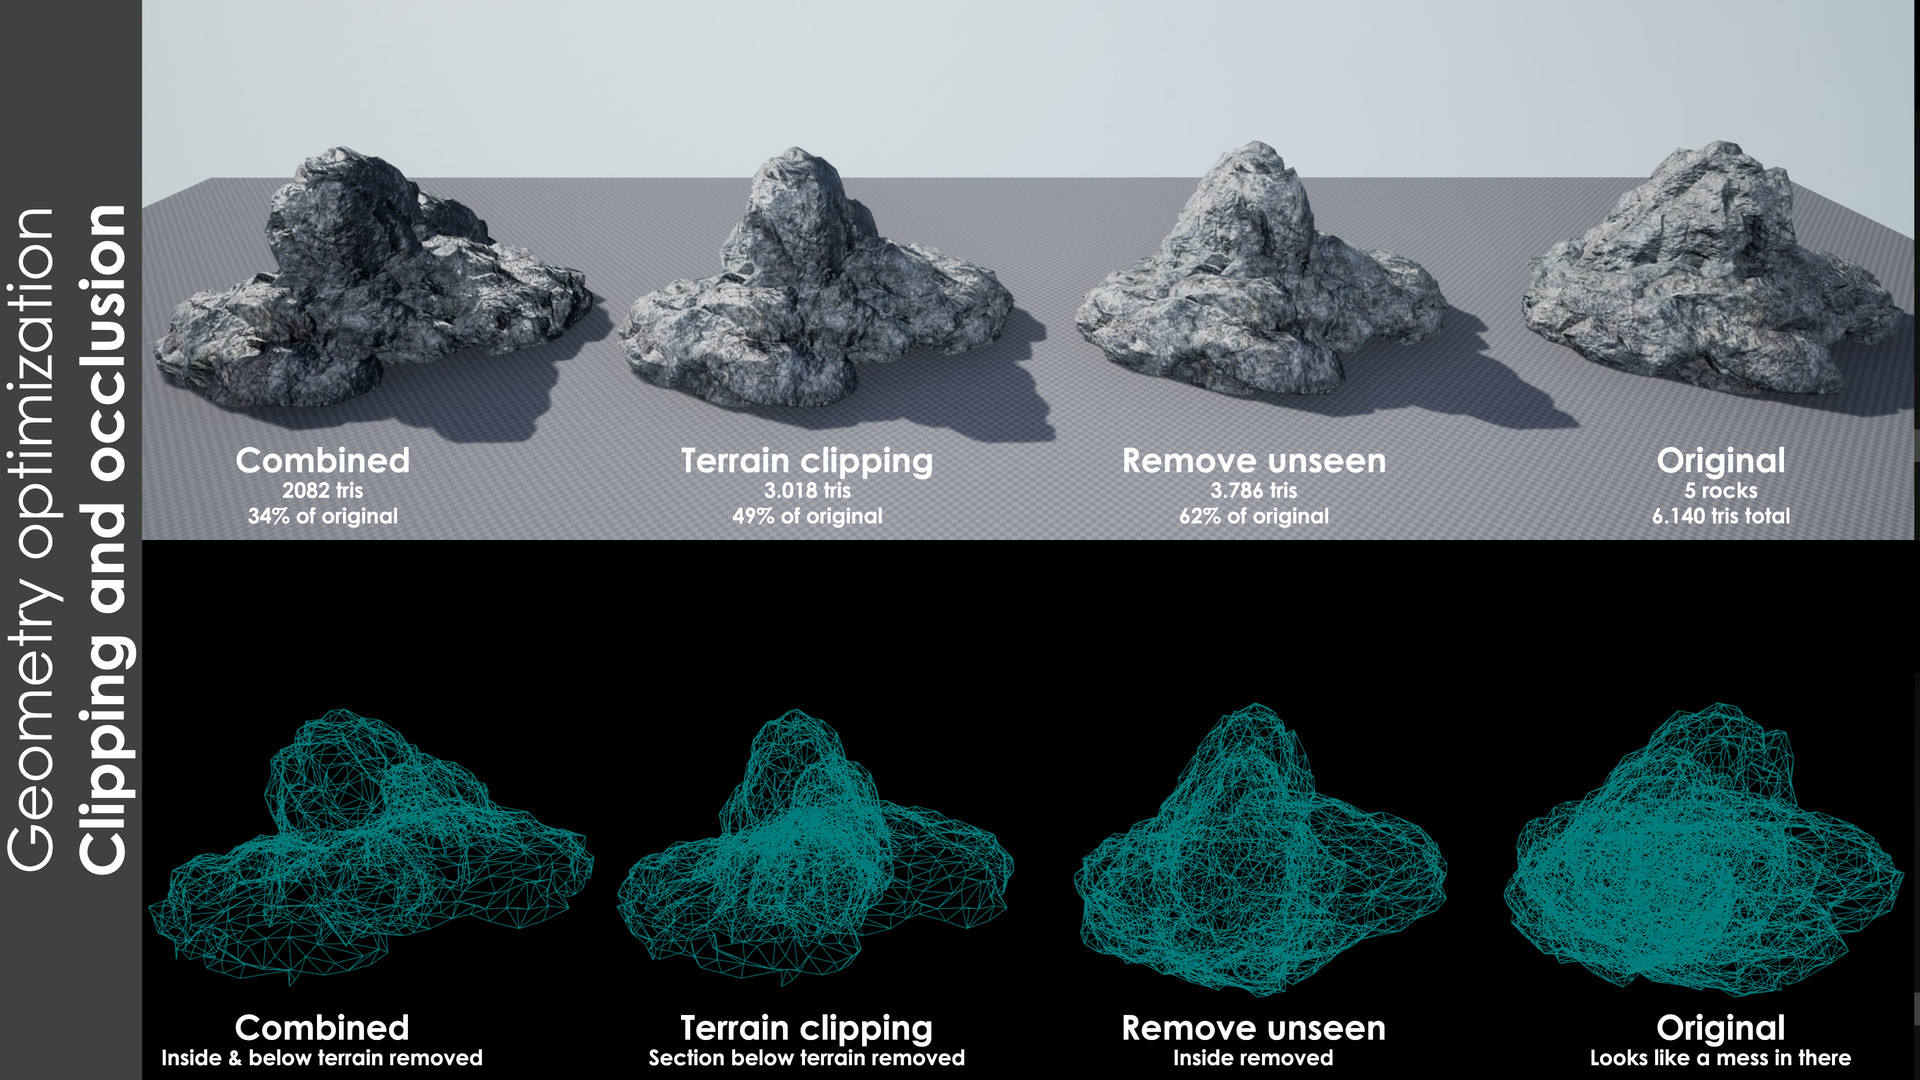 The clipping and occlusion mapping options used in engine